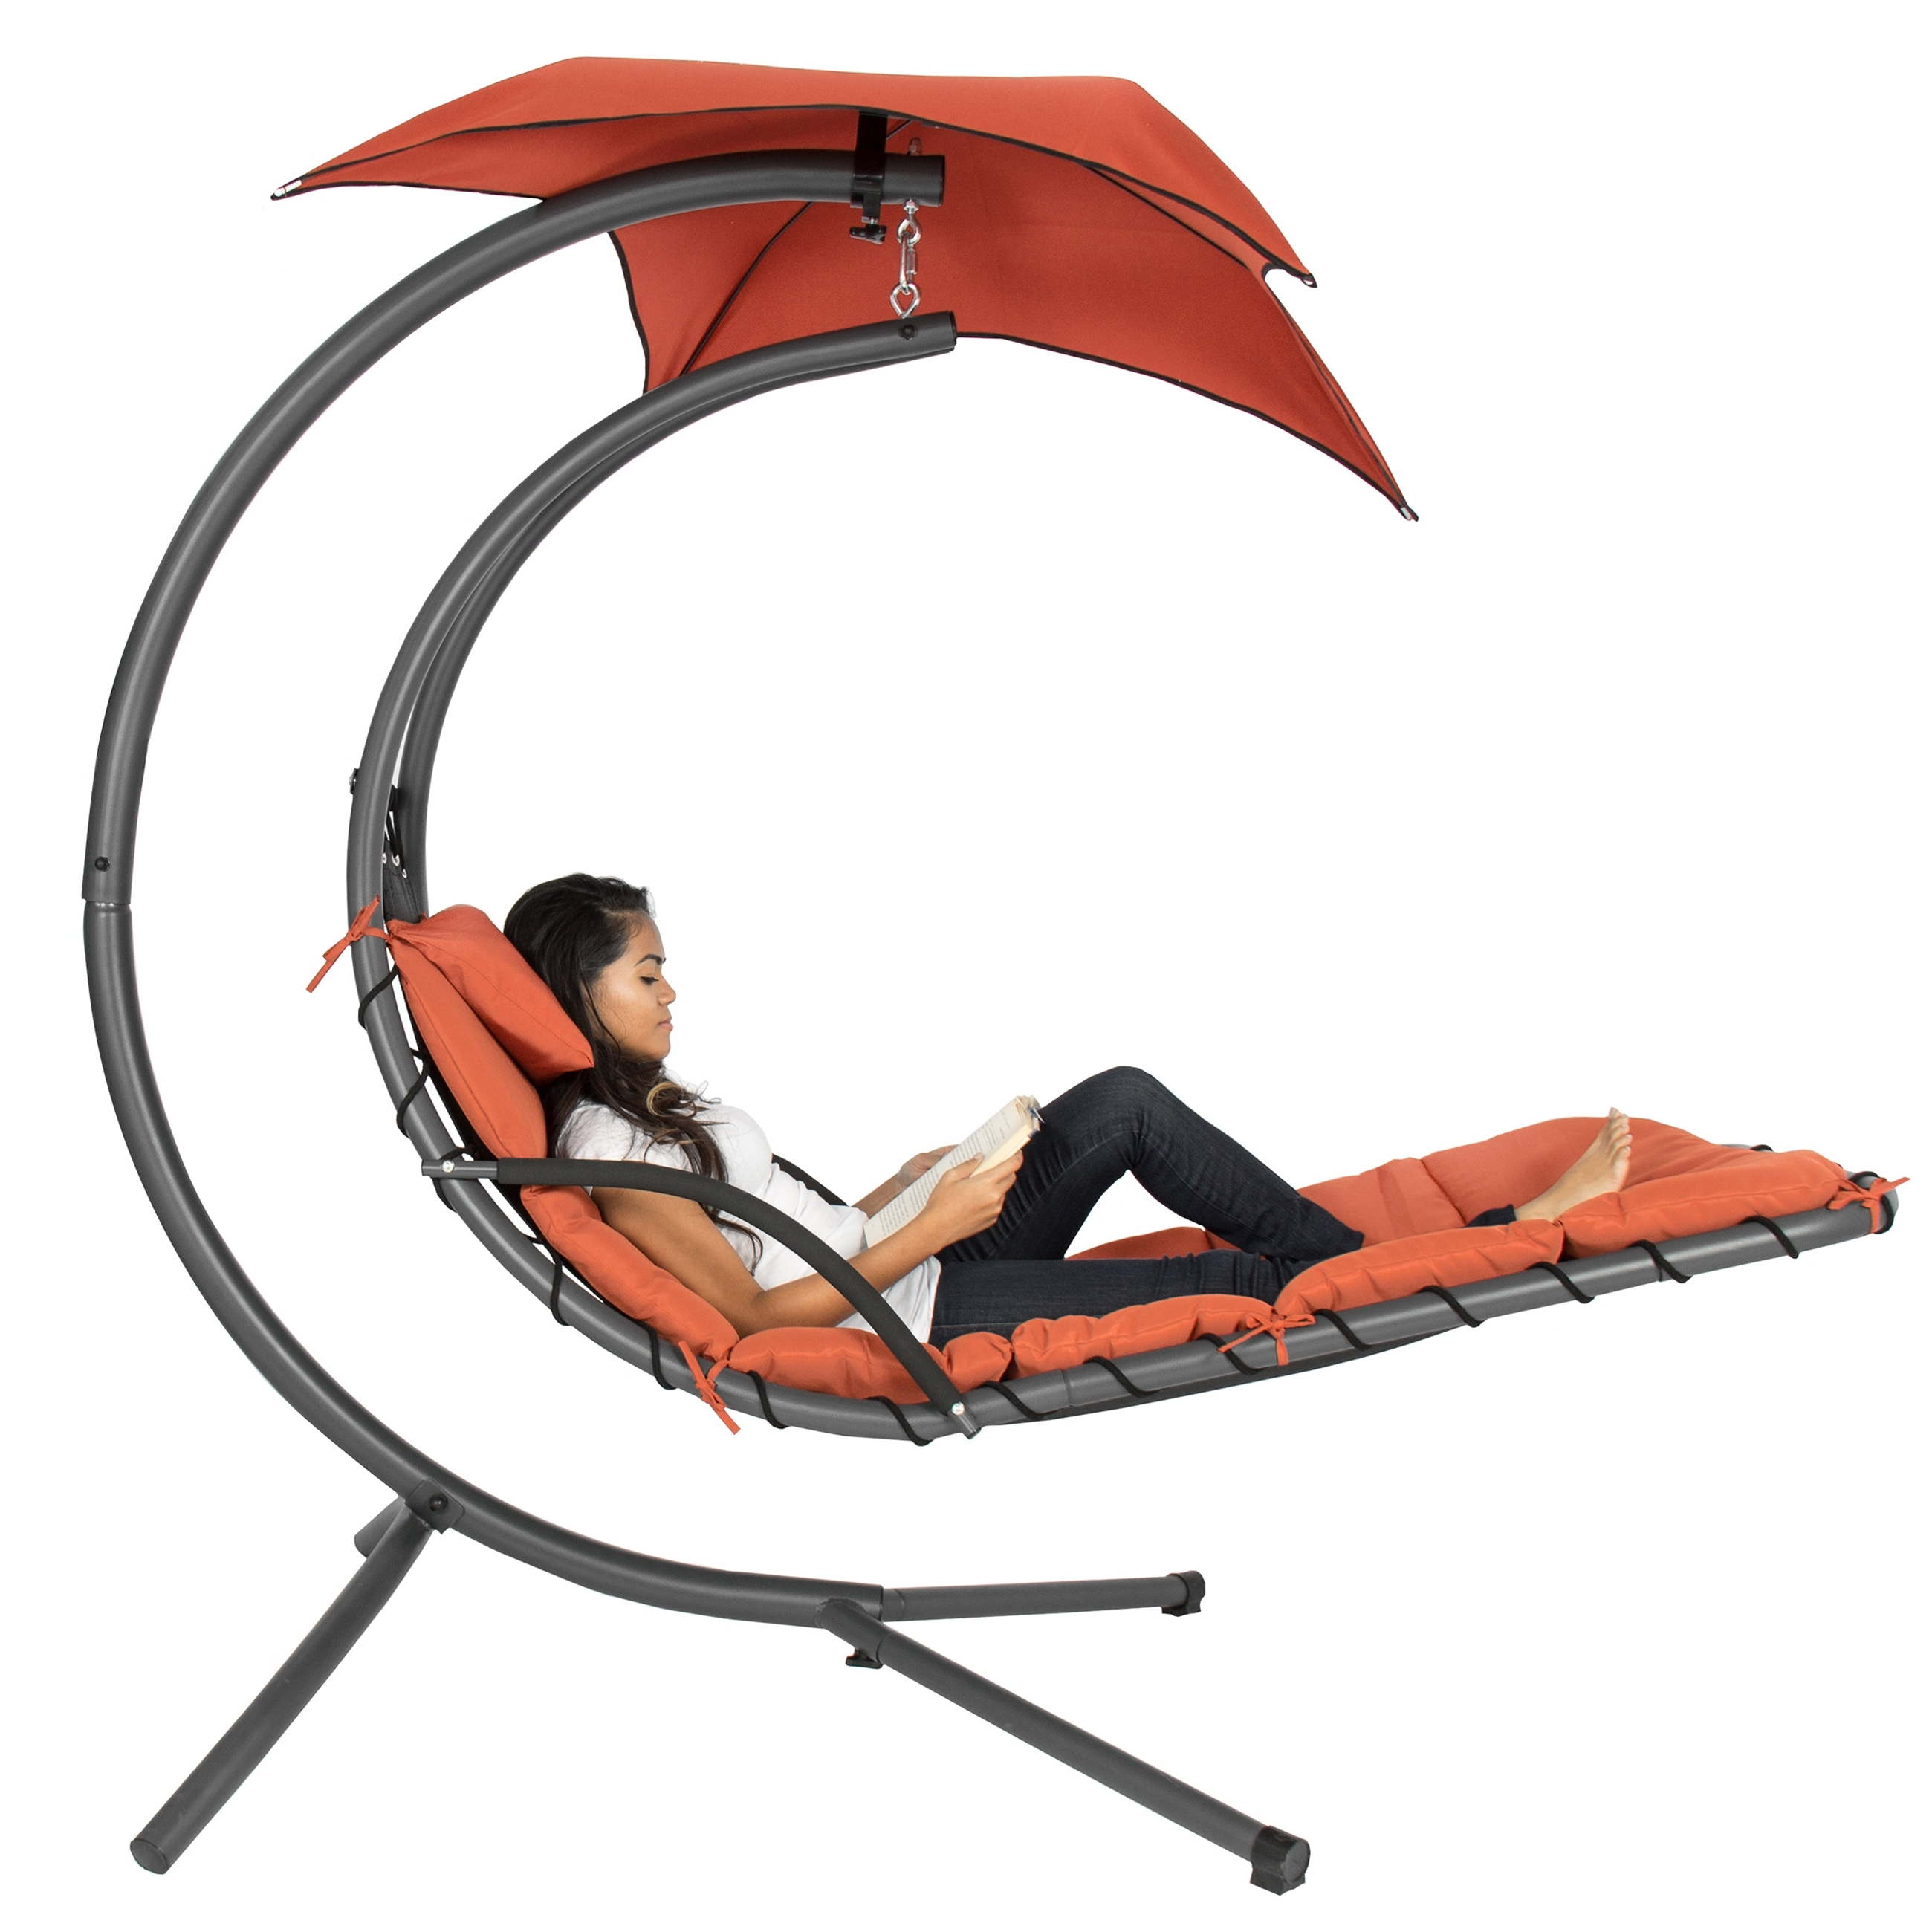 Best Choice Products Hanging Chaise Lounger Chair Arc Stand Air Within Trendy Hanging Chaise Lounge Chairs (View 2 of 15)